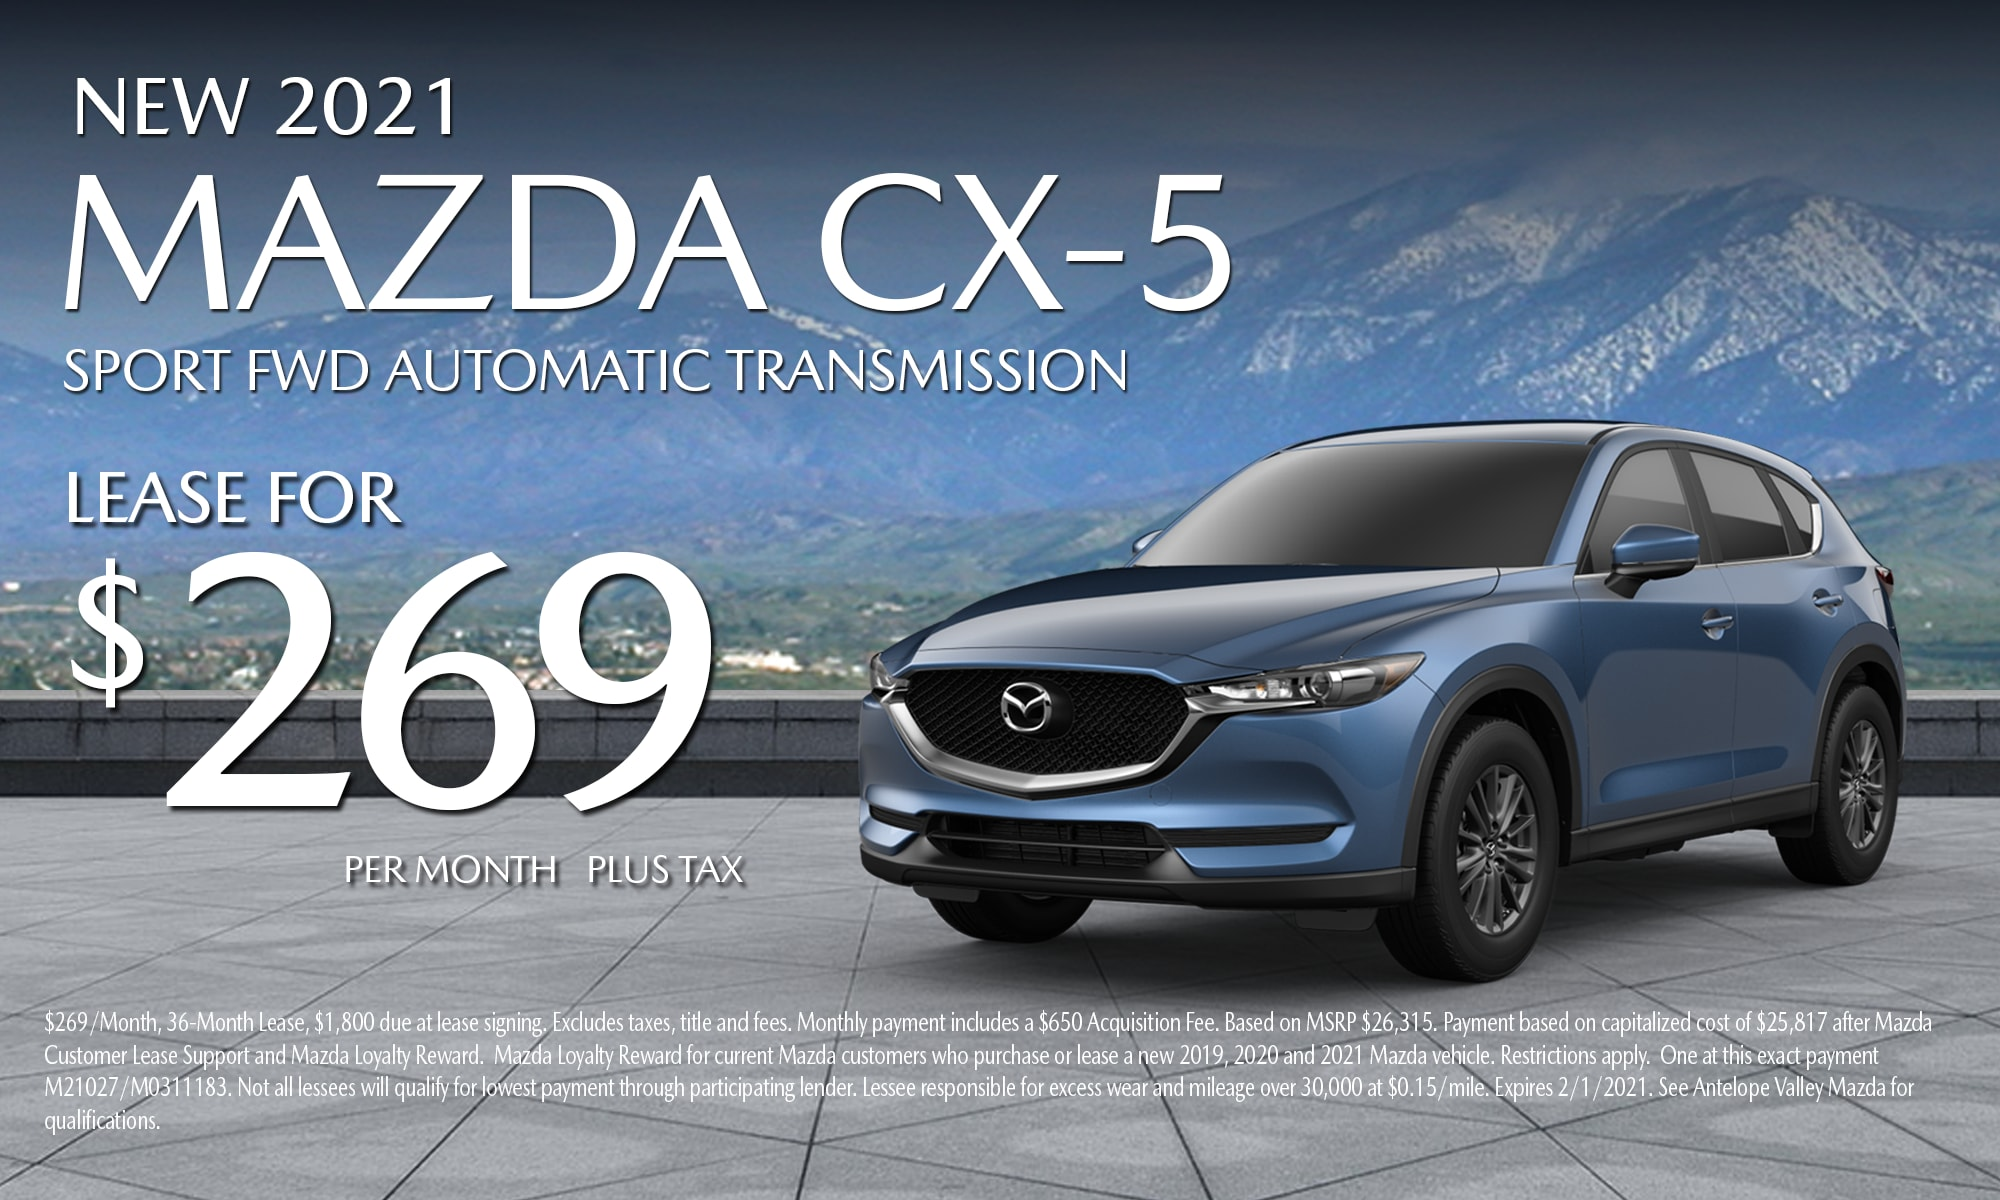 Antelope Valley Mazda Special lease offer on 2021 Mazda CX-5 Sport